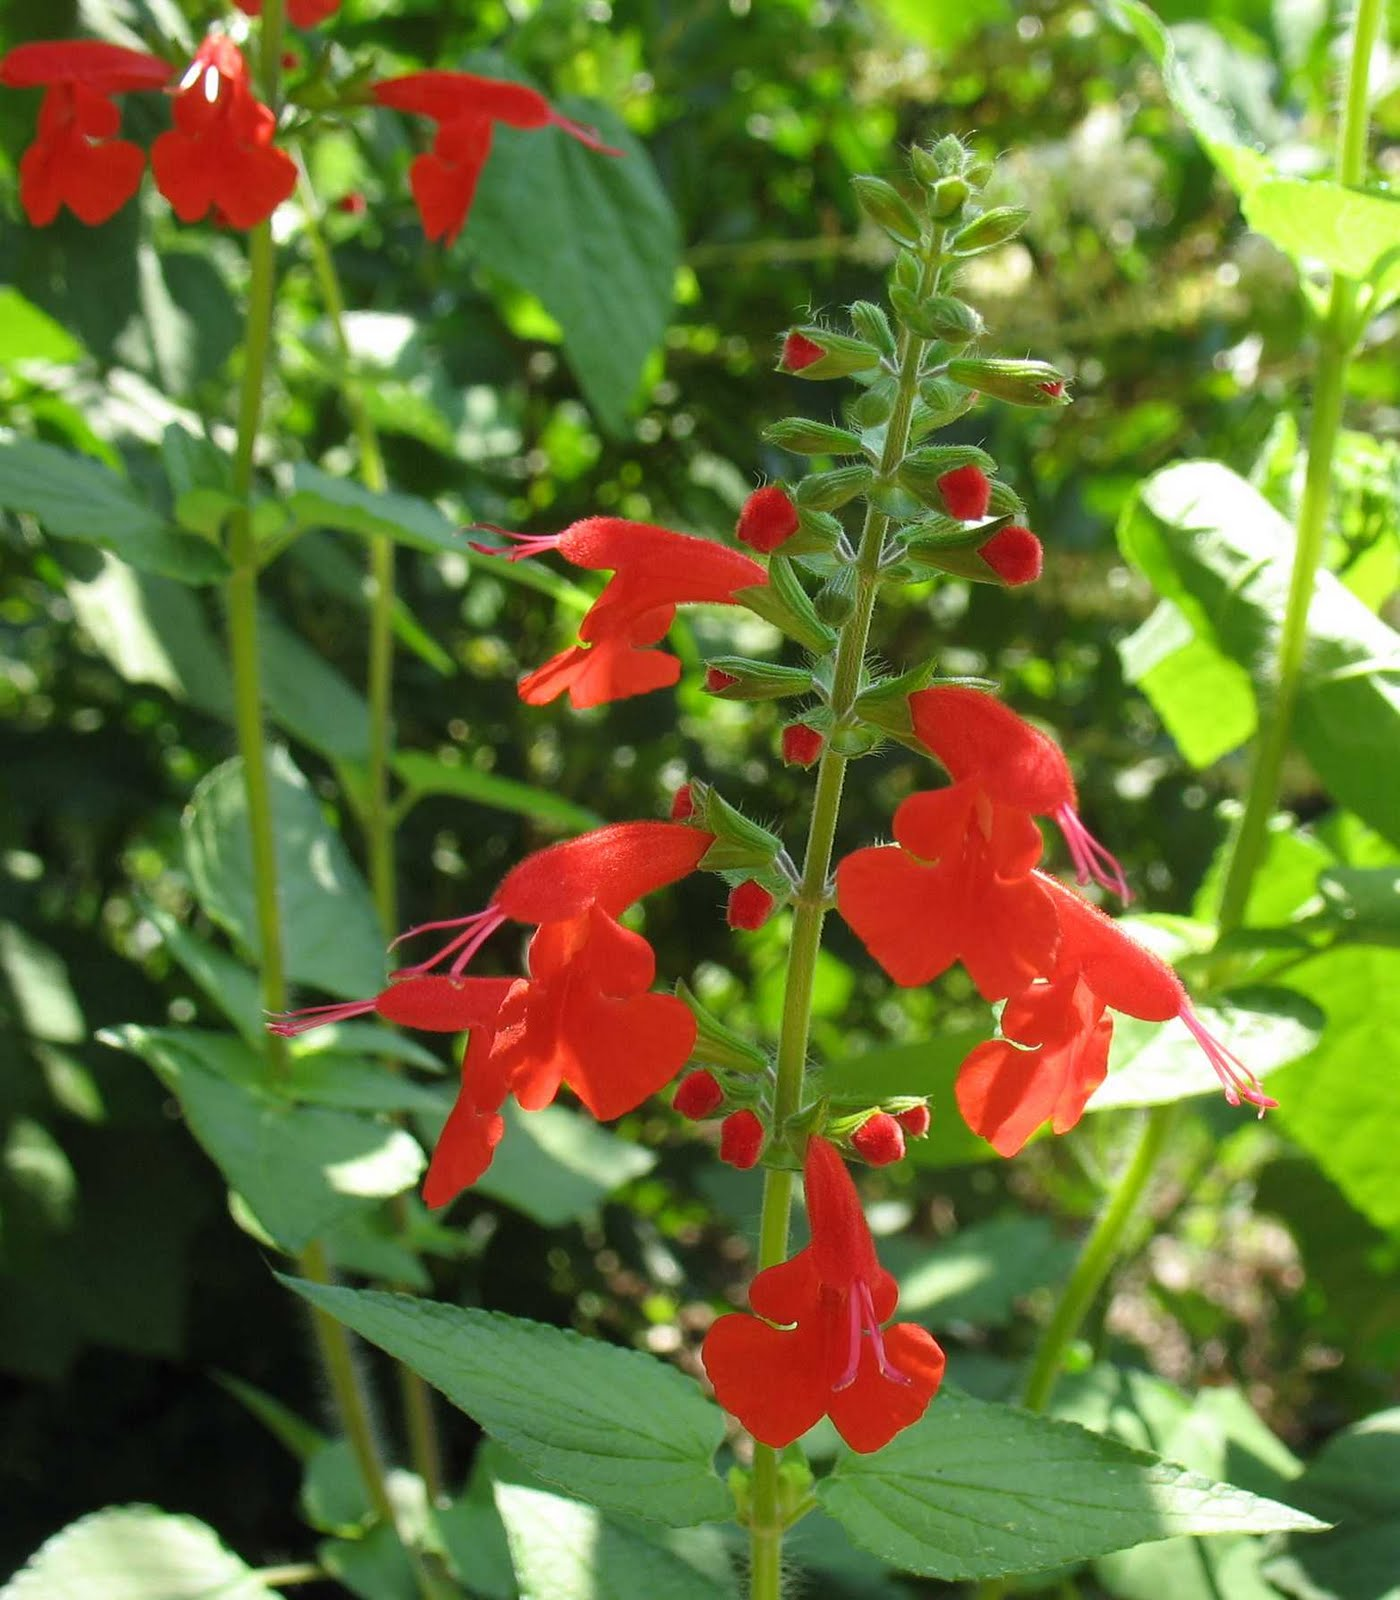 Native Plants: Using Georgia Native Plants: Hummingbird Favorites In My